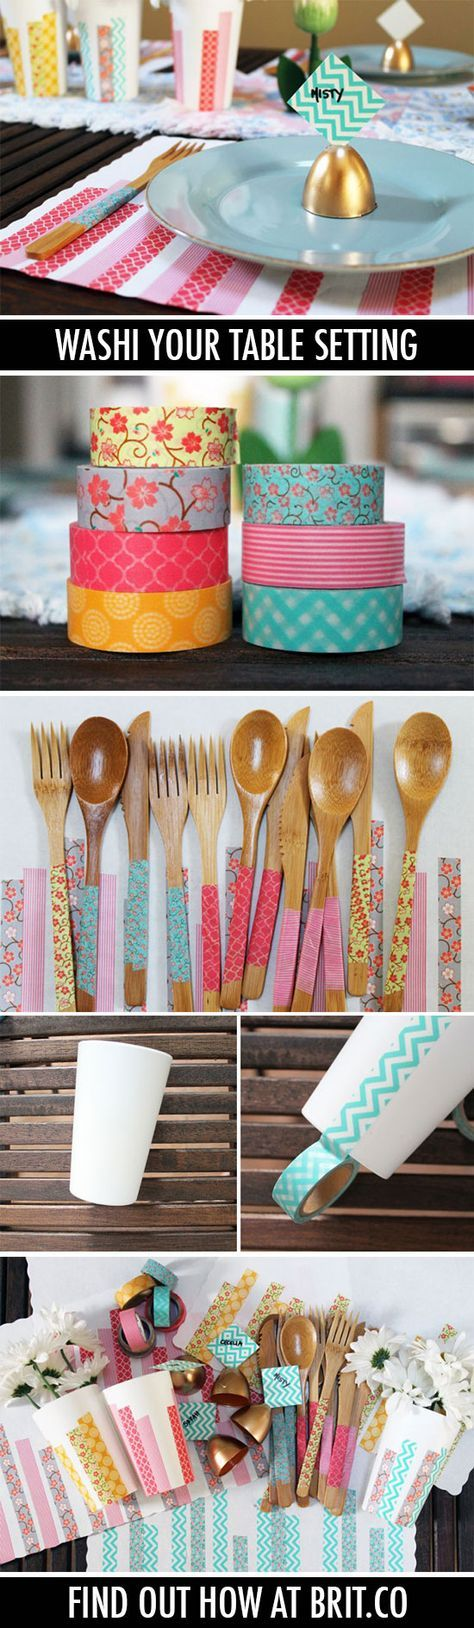 Washi Your Table: 4 Quick Projects for Sunday Brunch | Brit + Co.